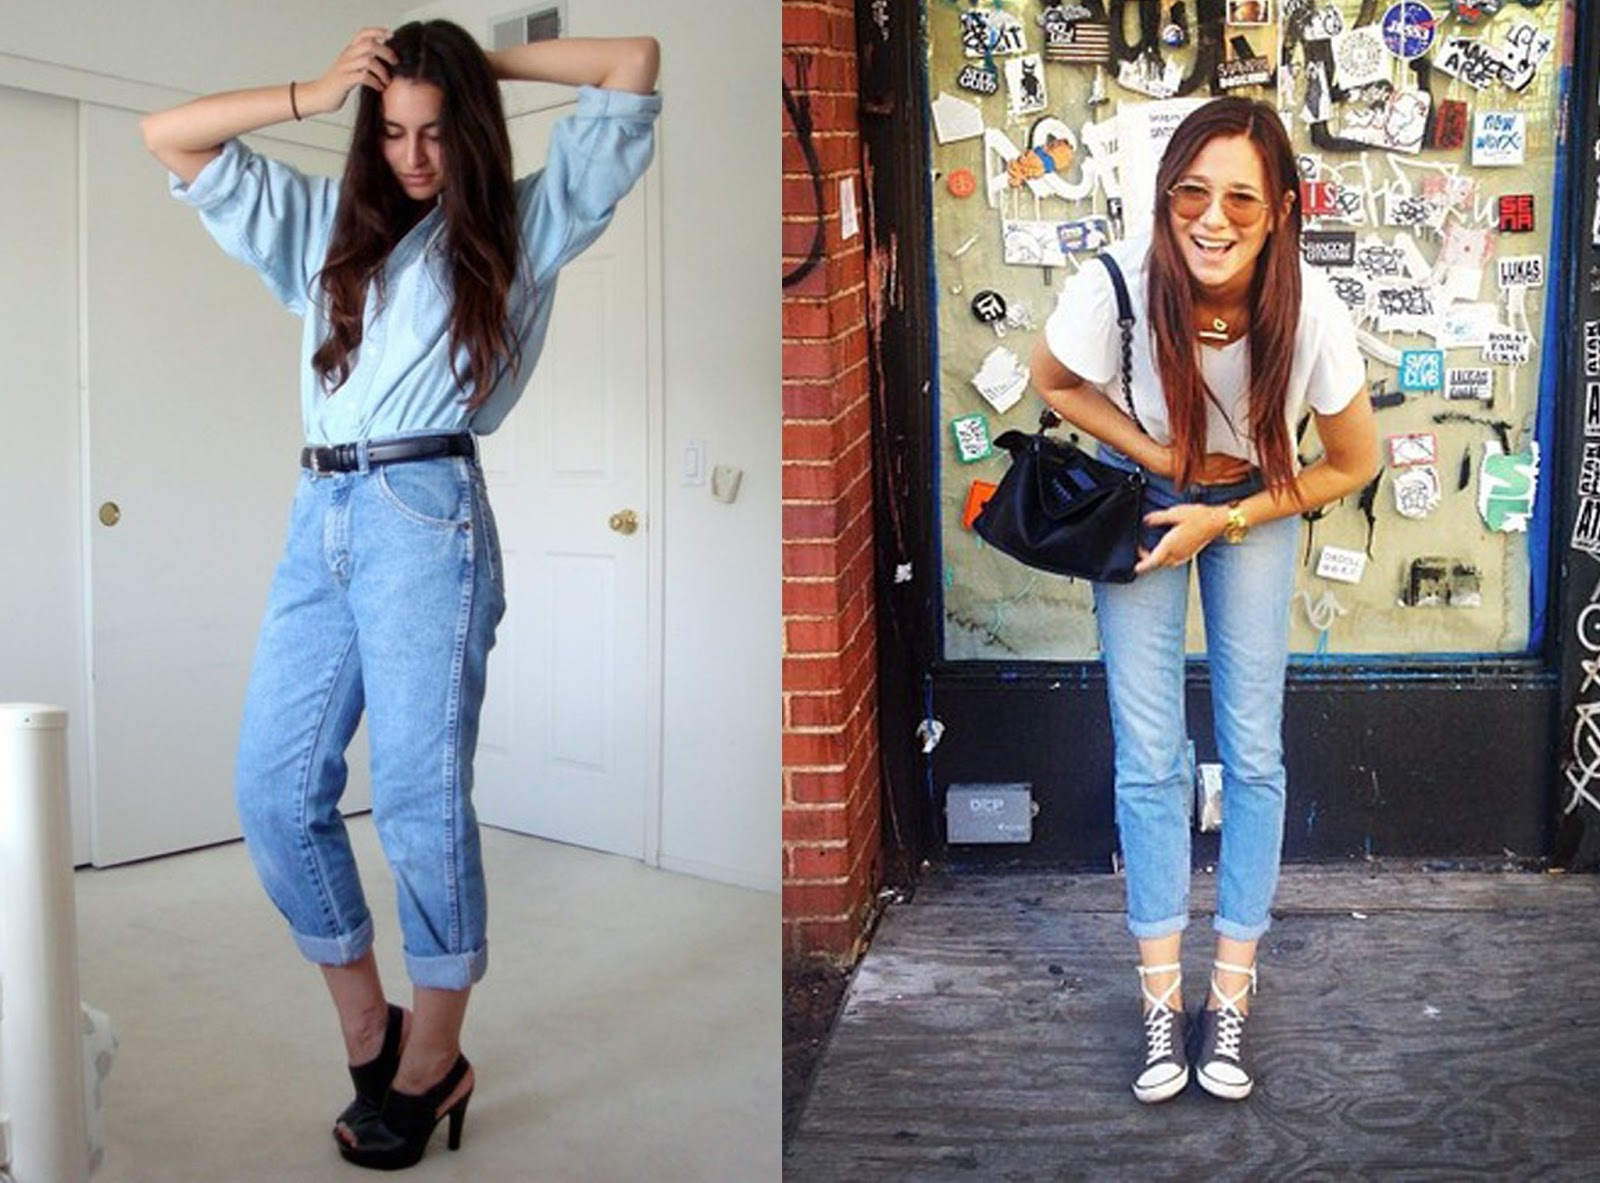 726b8036b6f7a Topshop Vintage Mom Jeans outfit inspiration t Jeans